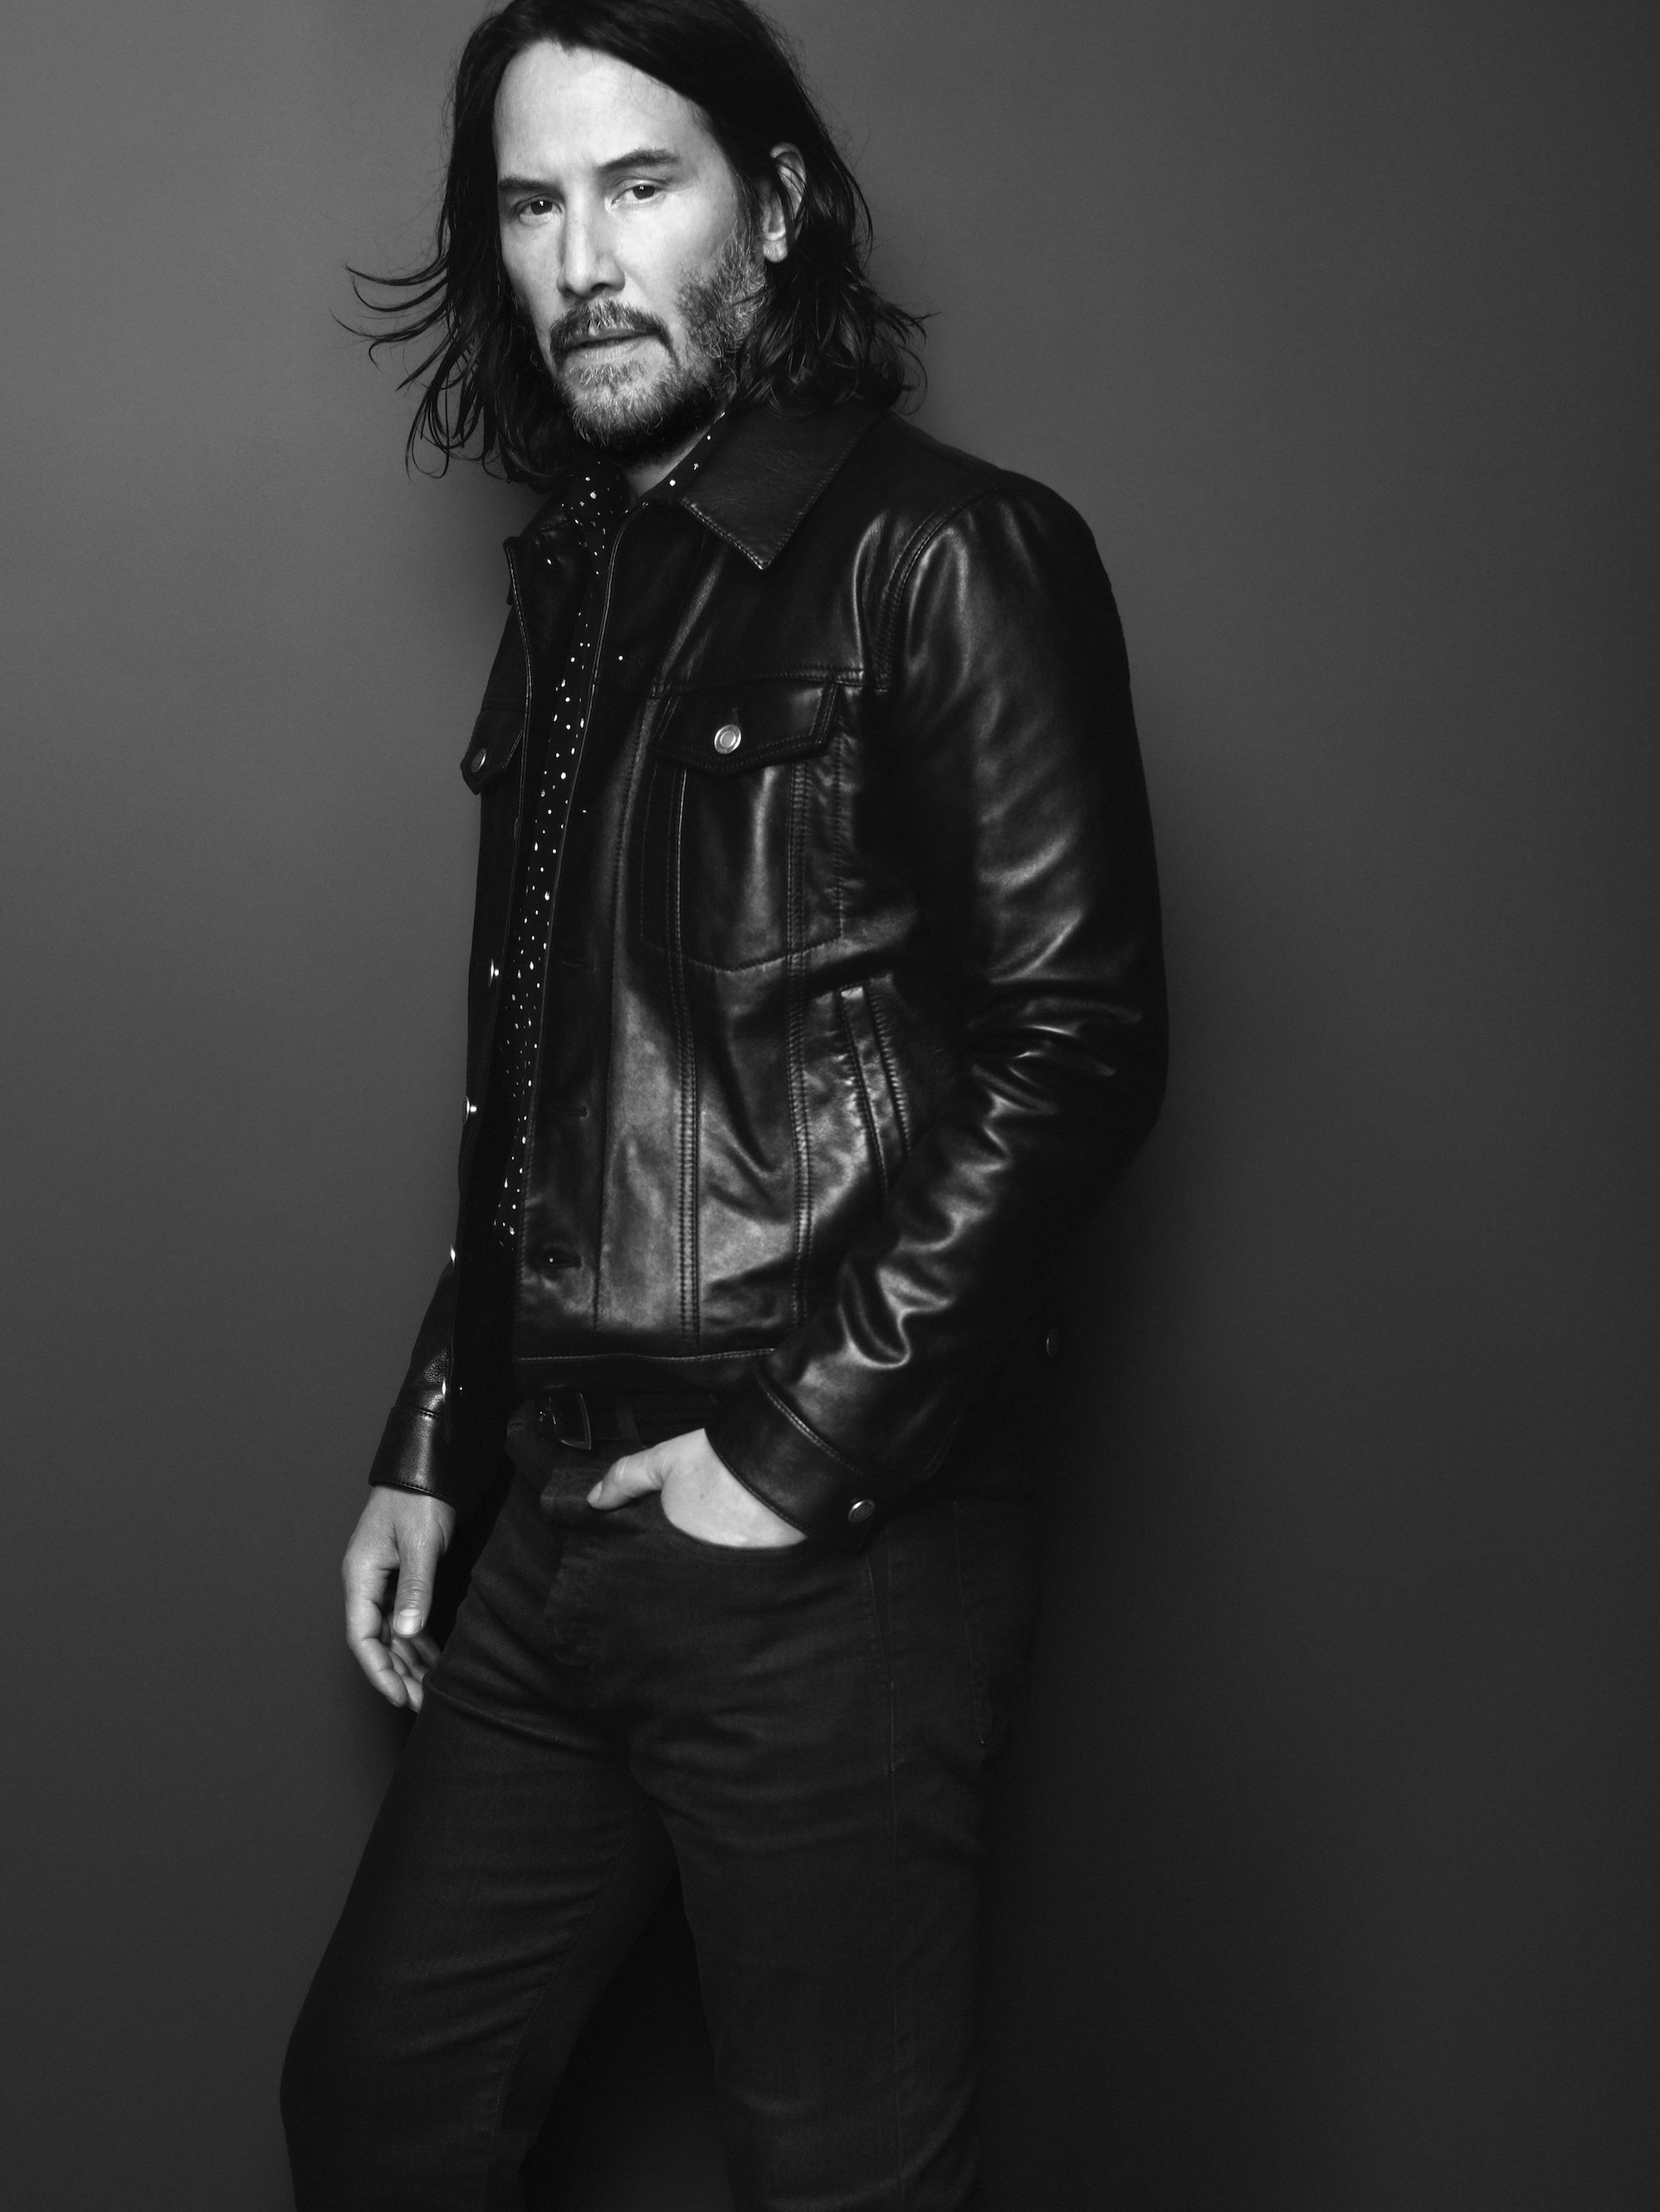 Keanu Reeves is the face of Saint Laurent Fall 2019 menswear campaign in a leather jacket